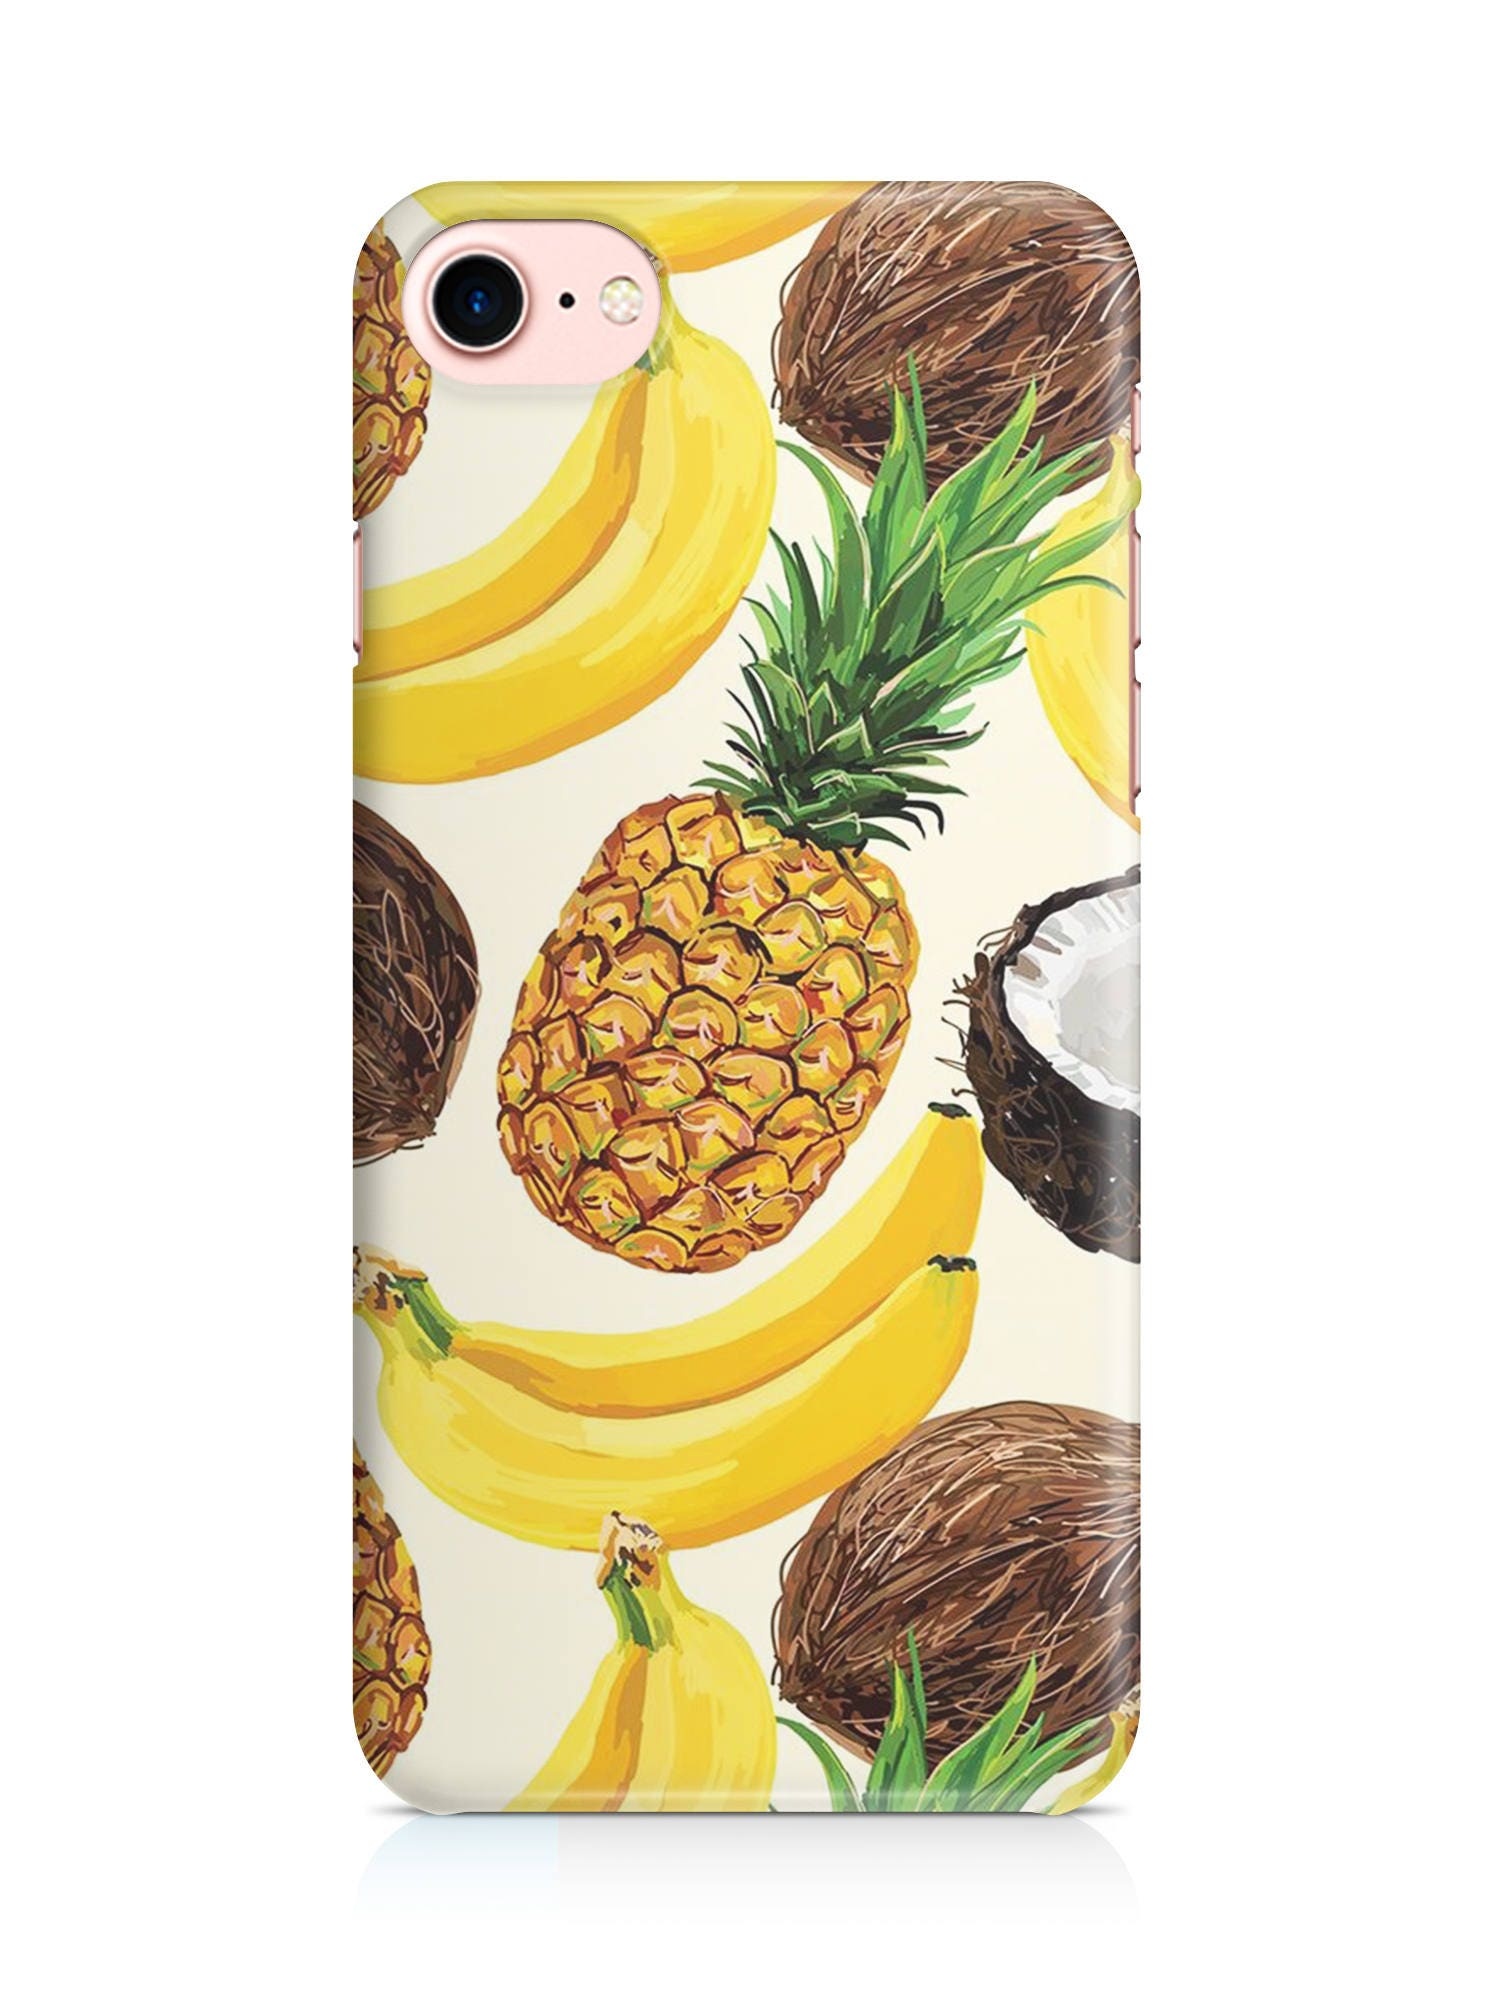 Caseplus Cover Custodia Ananas Banana Cocco Frutta Fruit Exotic Tumblr Tee Luxury Gold Case